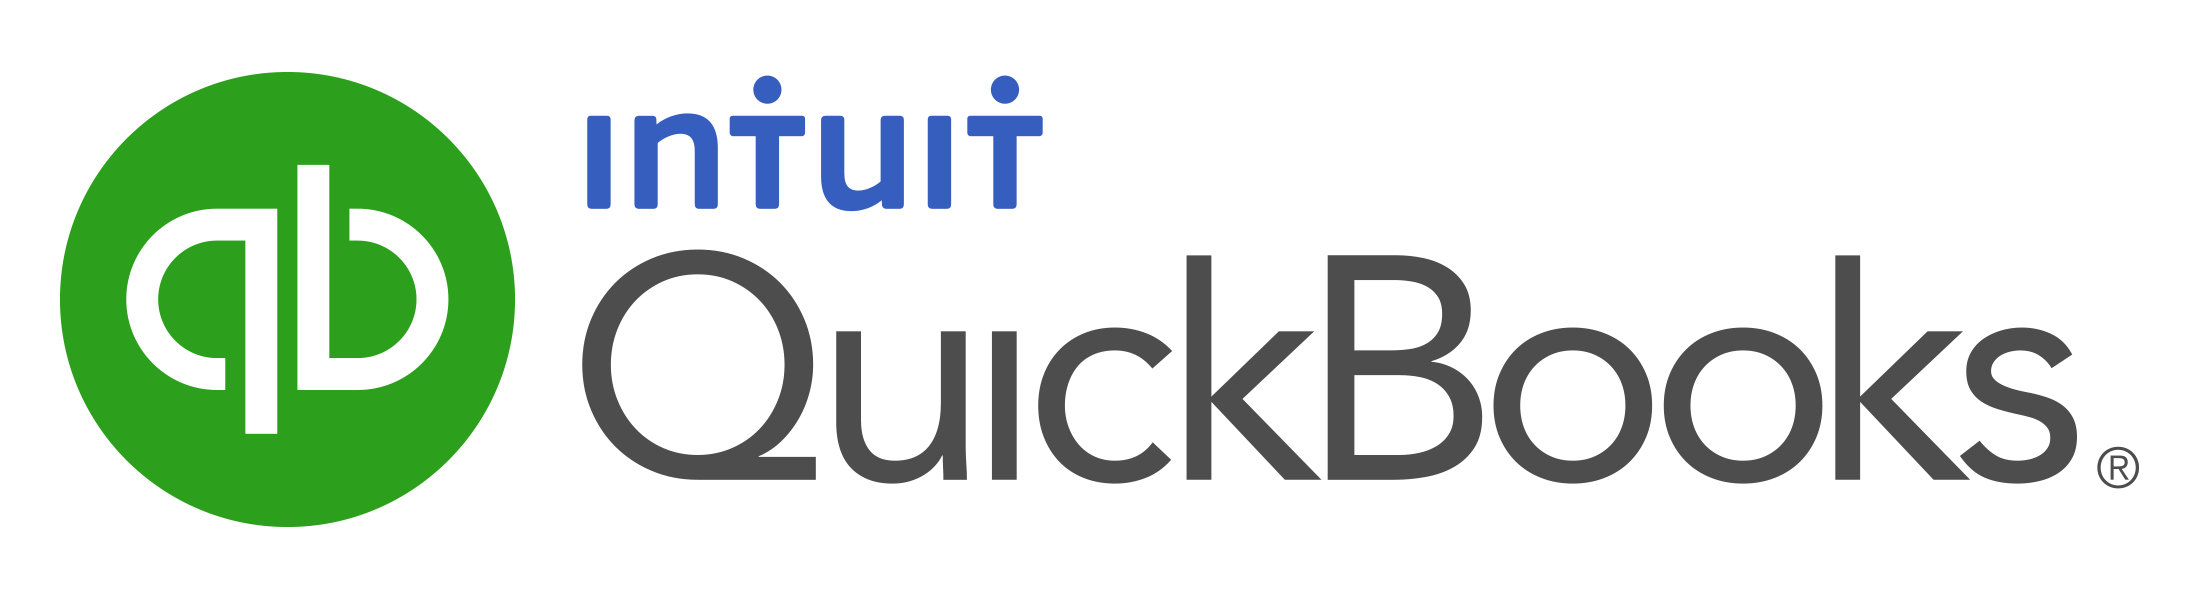 Quickbooks is the go to resource for many entrepreneurs. Get the web-based version (QuickBooks Online) so you, your co-founder and your accountant can access anytime, anywhere